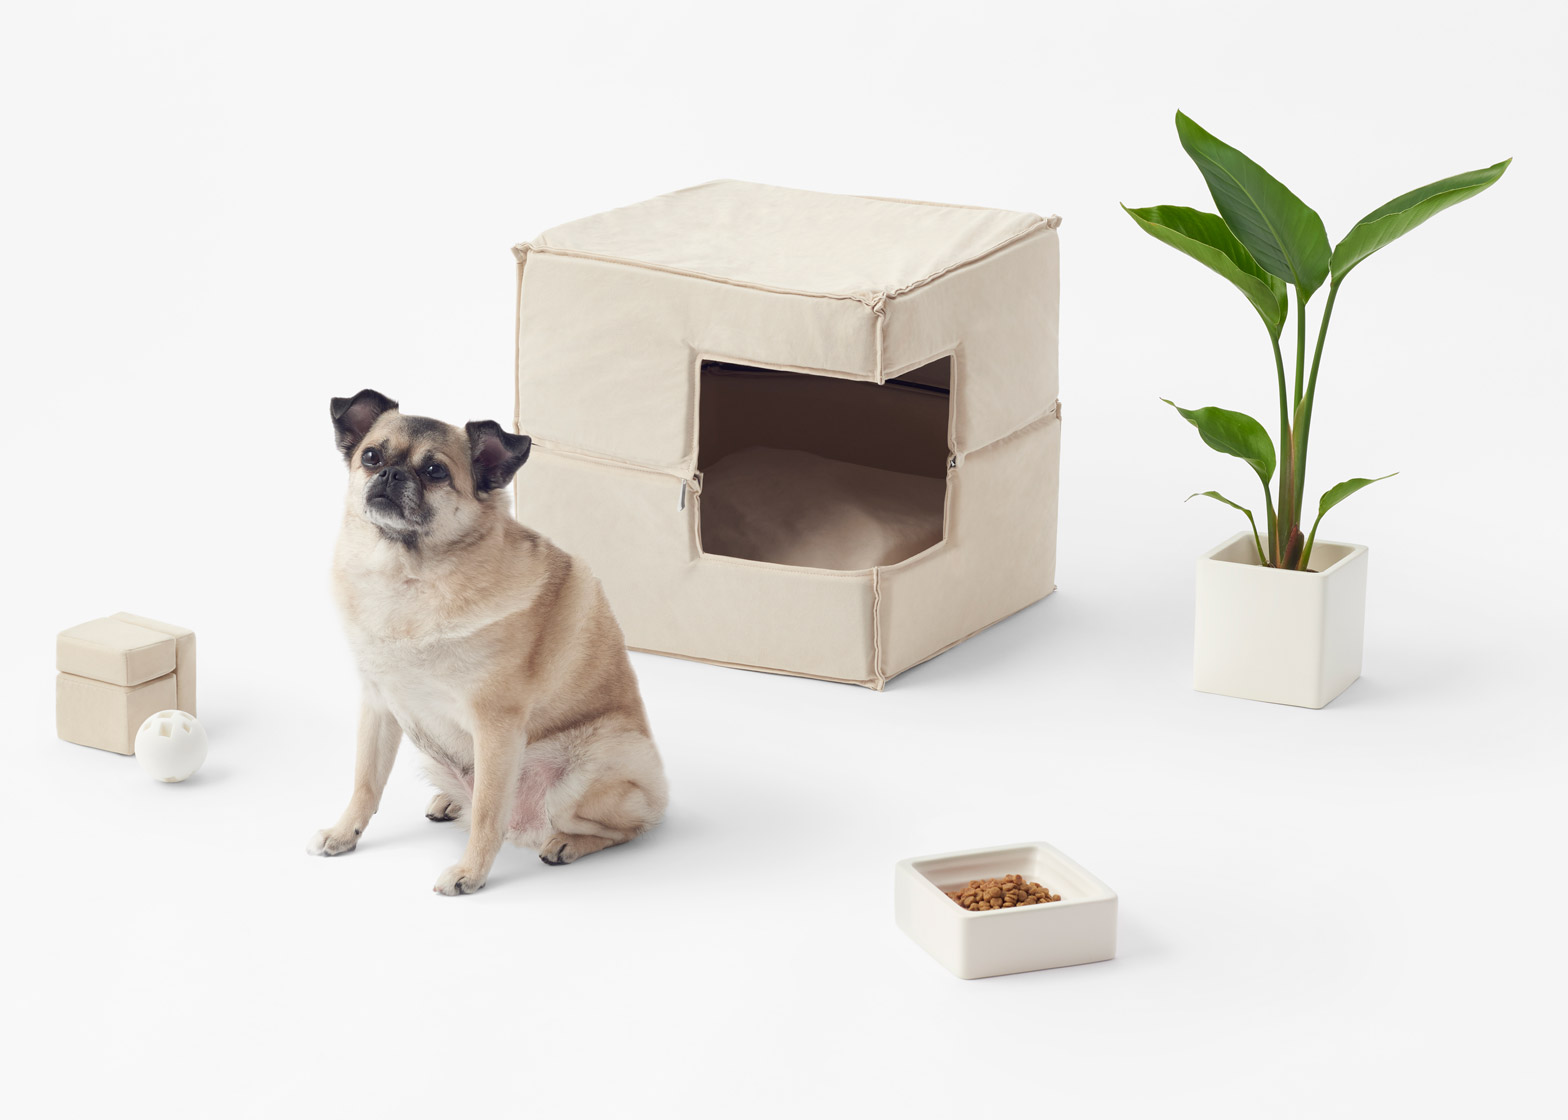 Minimalist dog accessories shoebox dwelling finding comfort style and dignity in small spaces - Pets for small spaces style ...